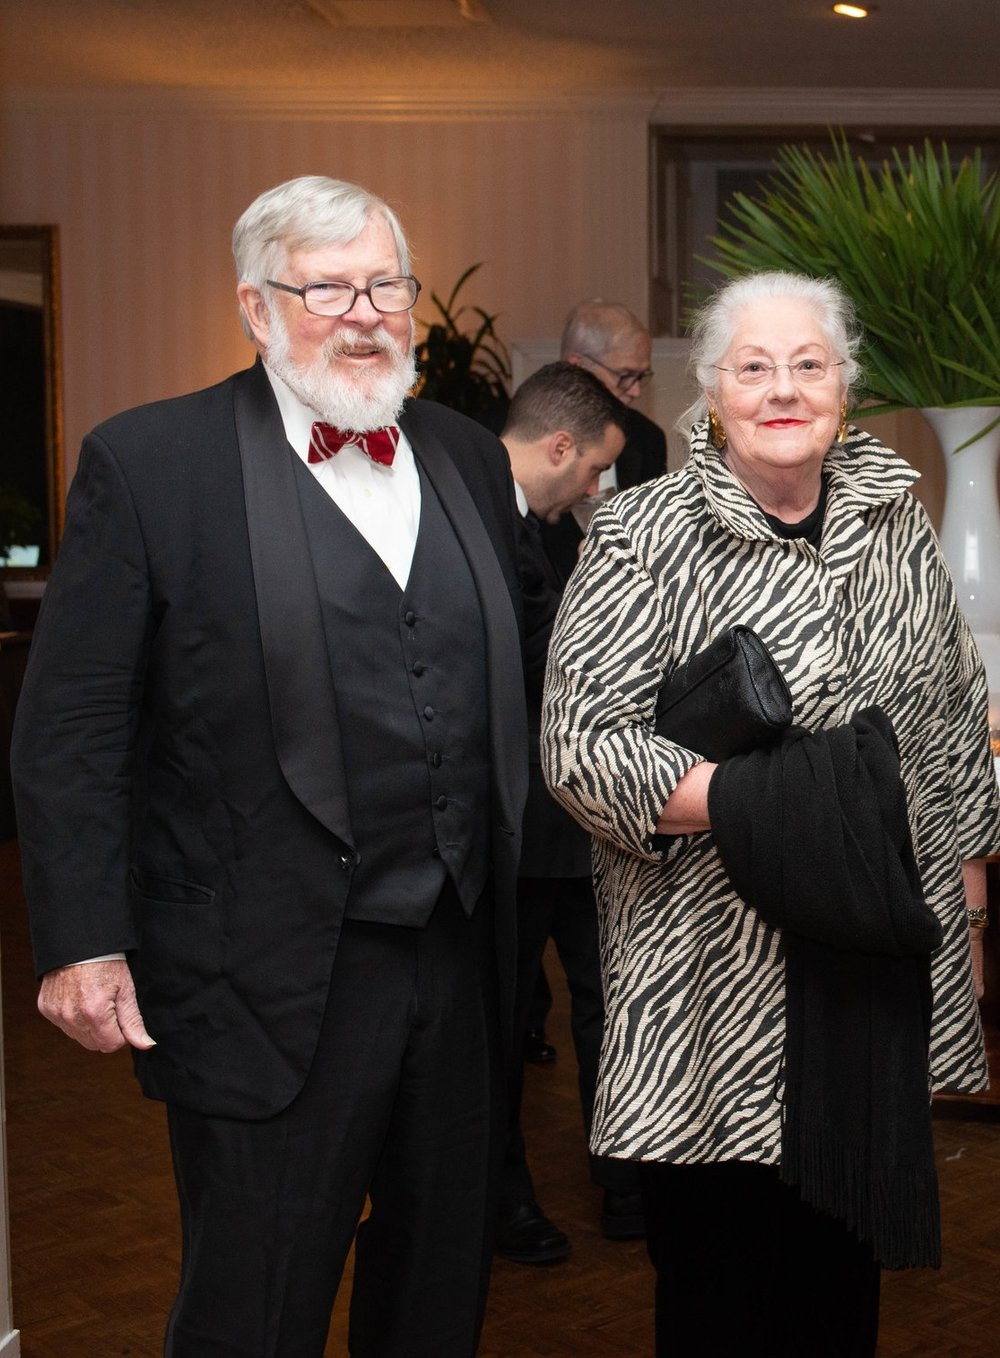 Barry & Barbara Carroll at the 2018 Symphony Gala.